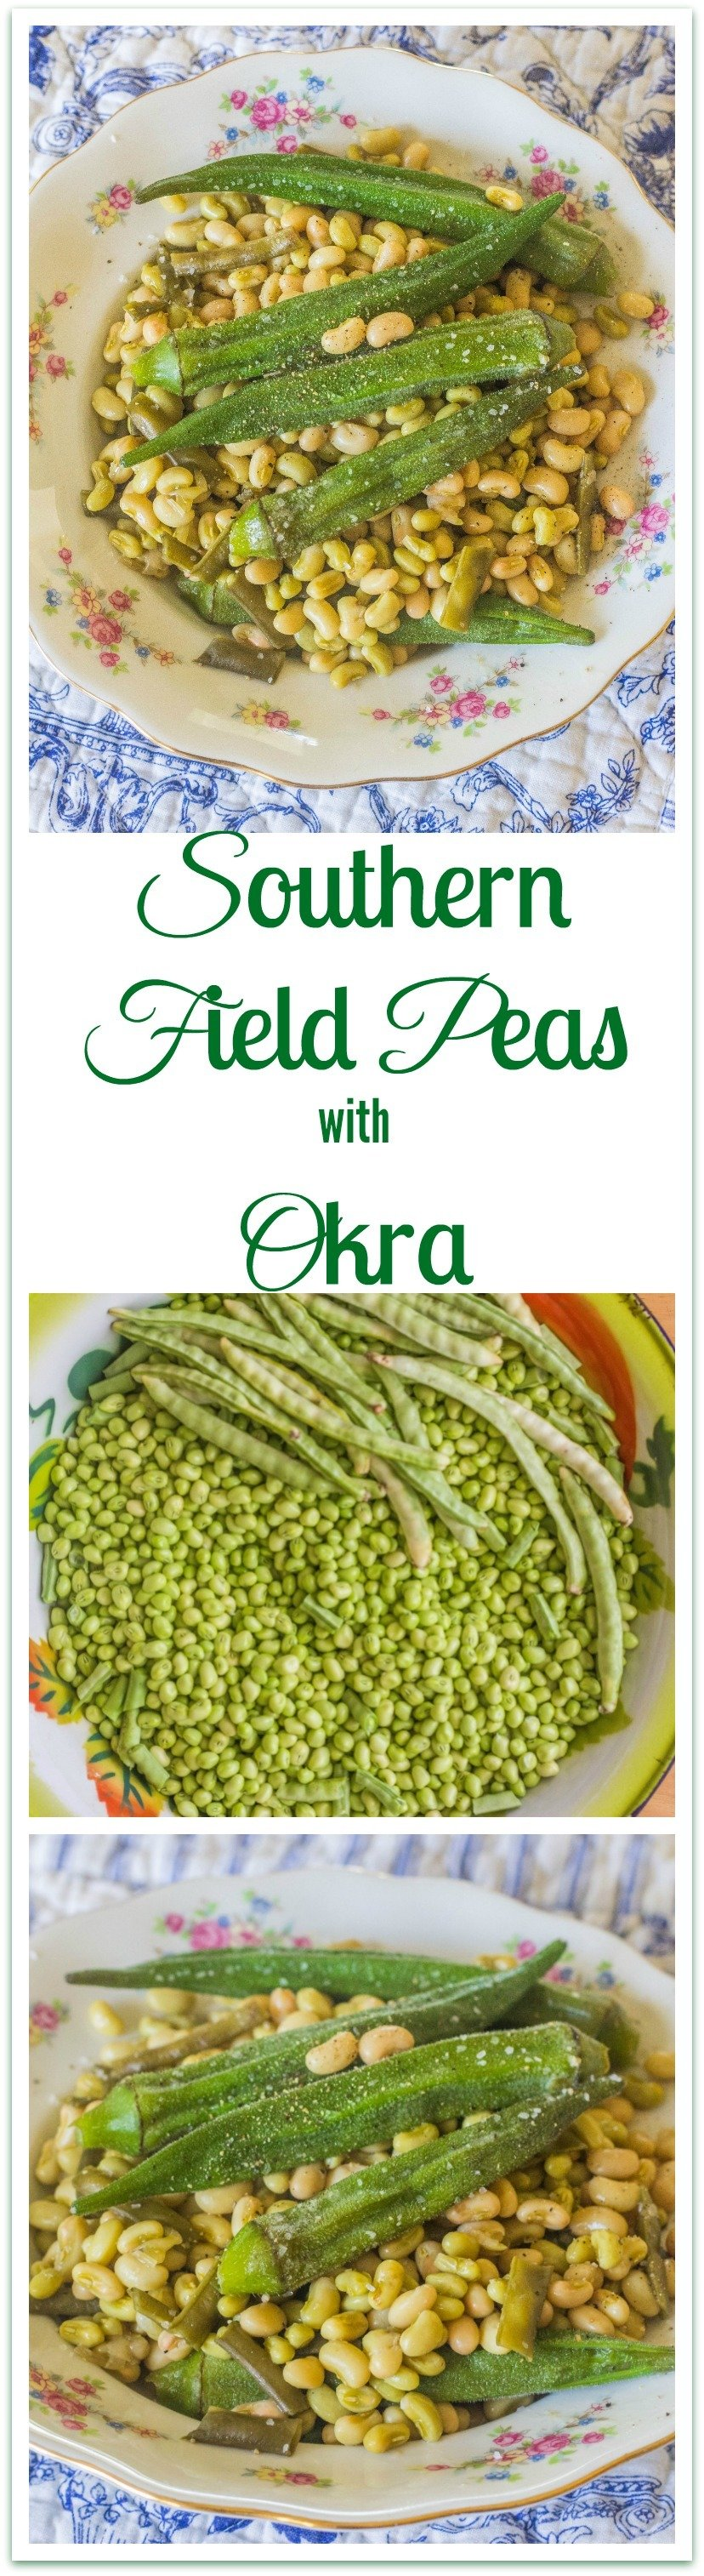 The crown jewel of Southern summer vegetables. A simple recipe for a delicious dish.#SouthernField #PeasOkra